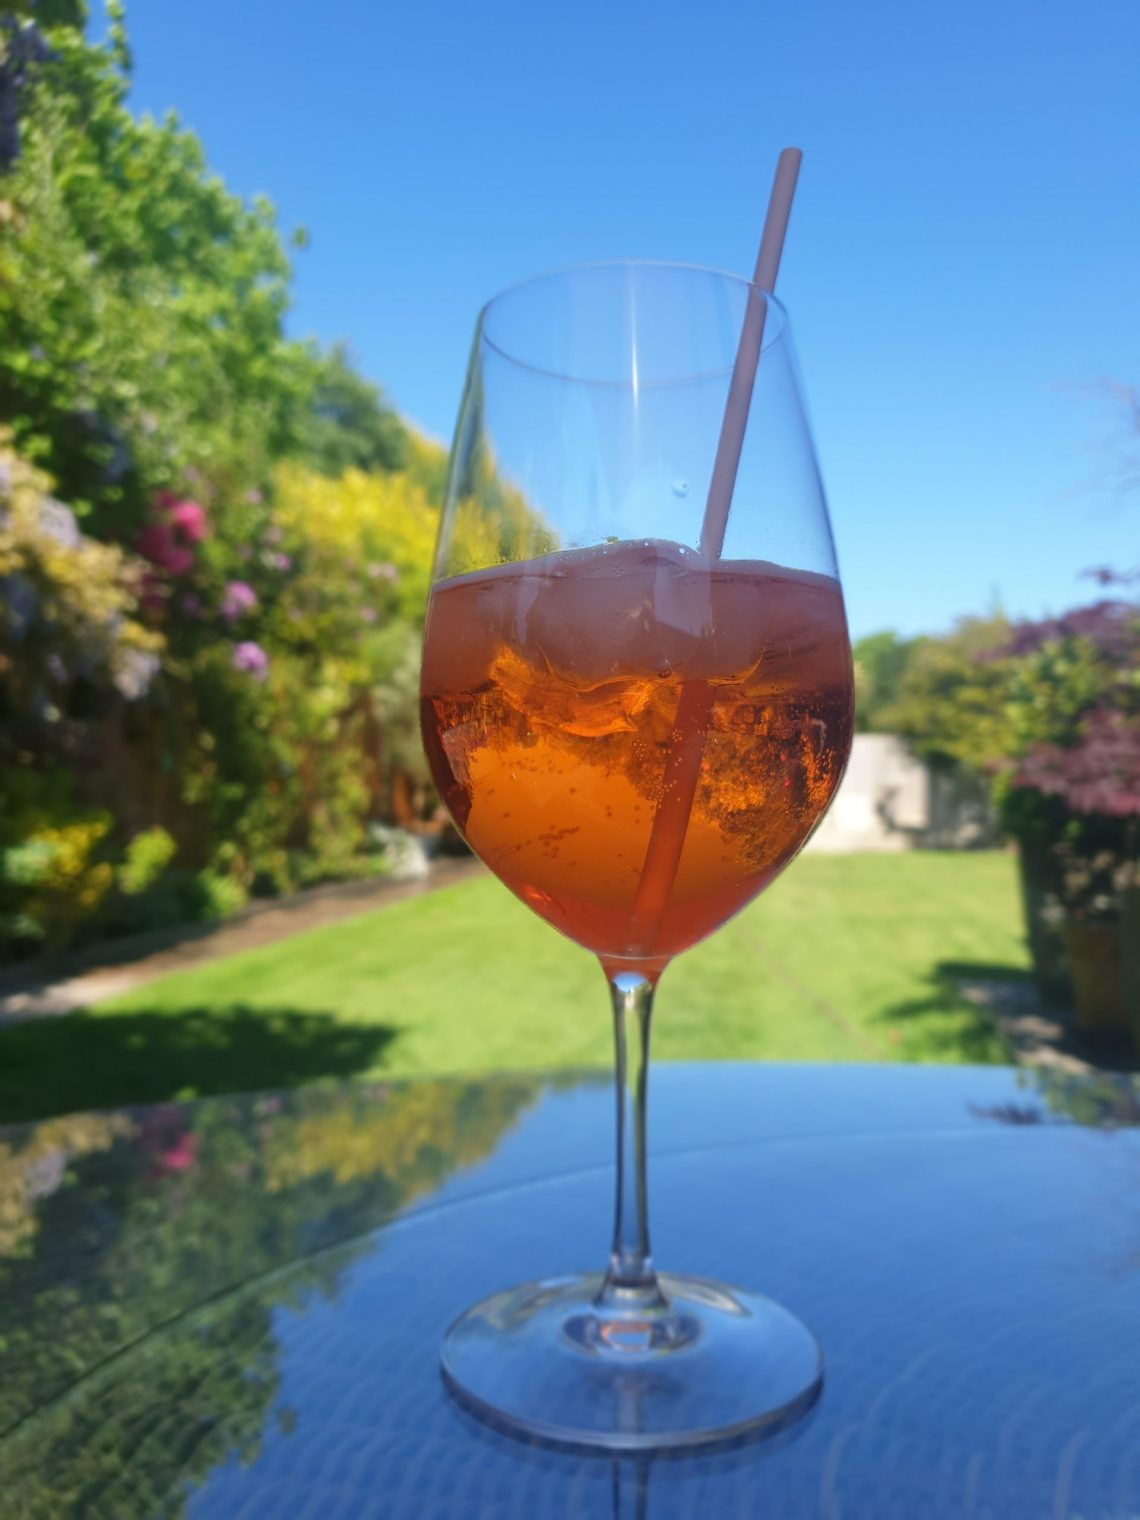 Aperol Spritz cocktail with Fever Tree Tonic, Prosecco and a garden background.